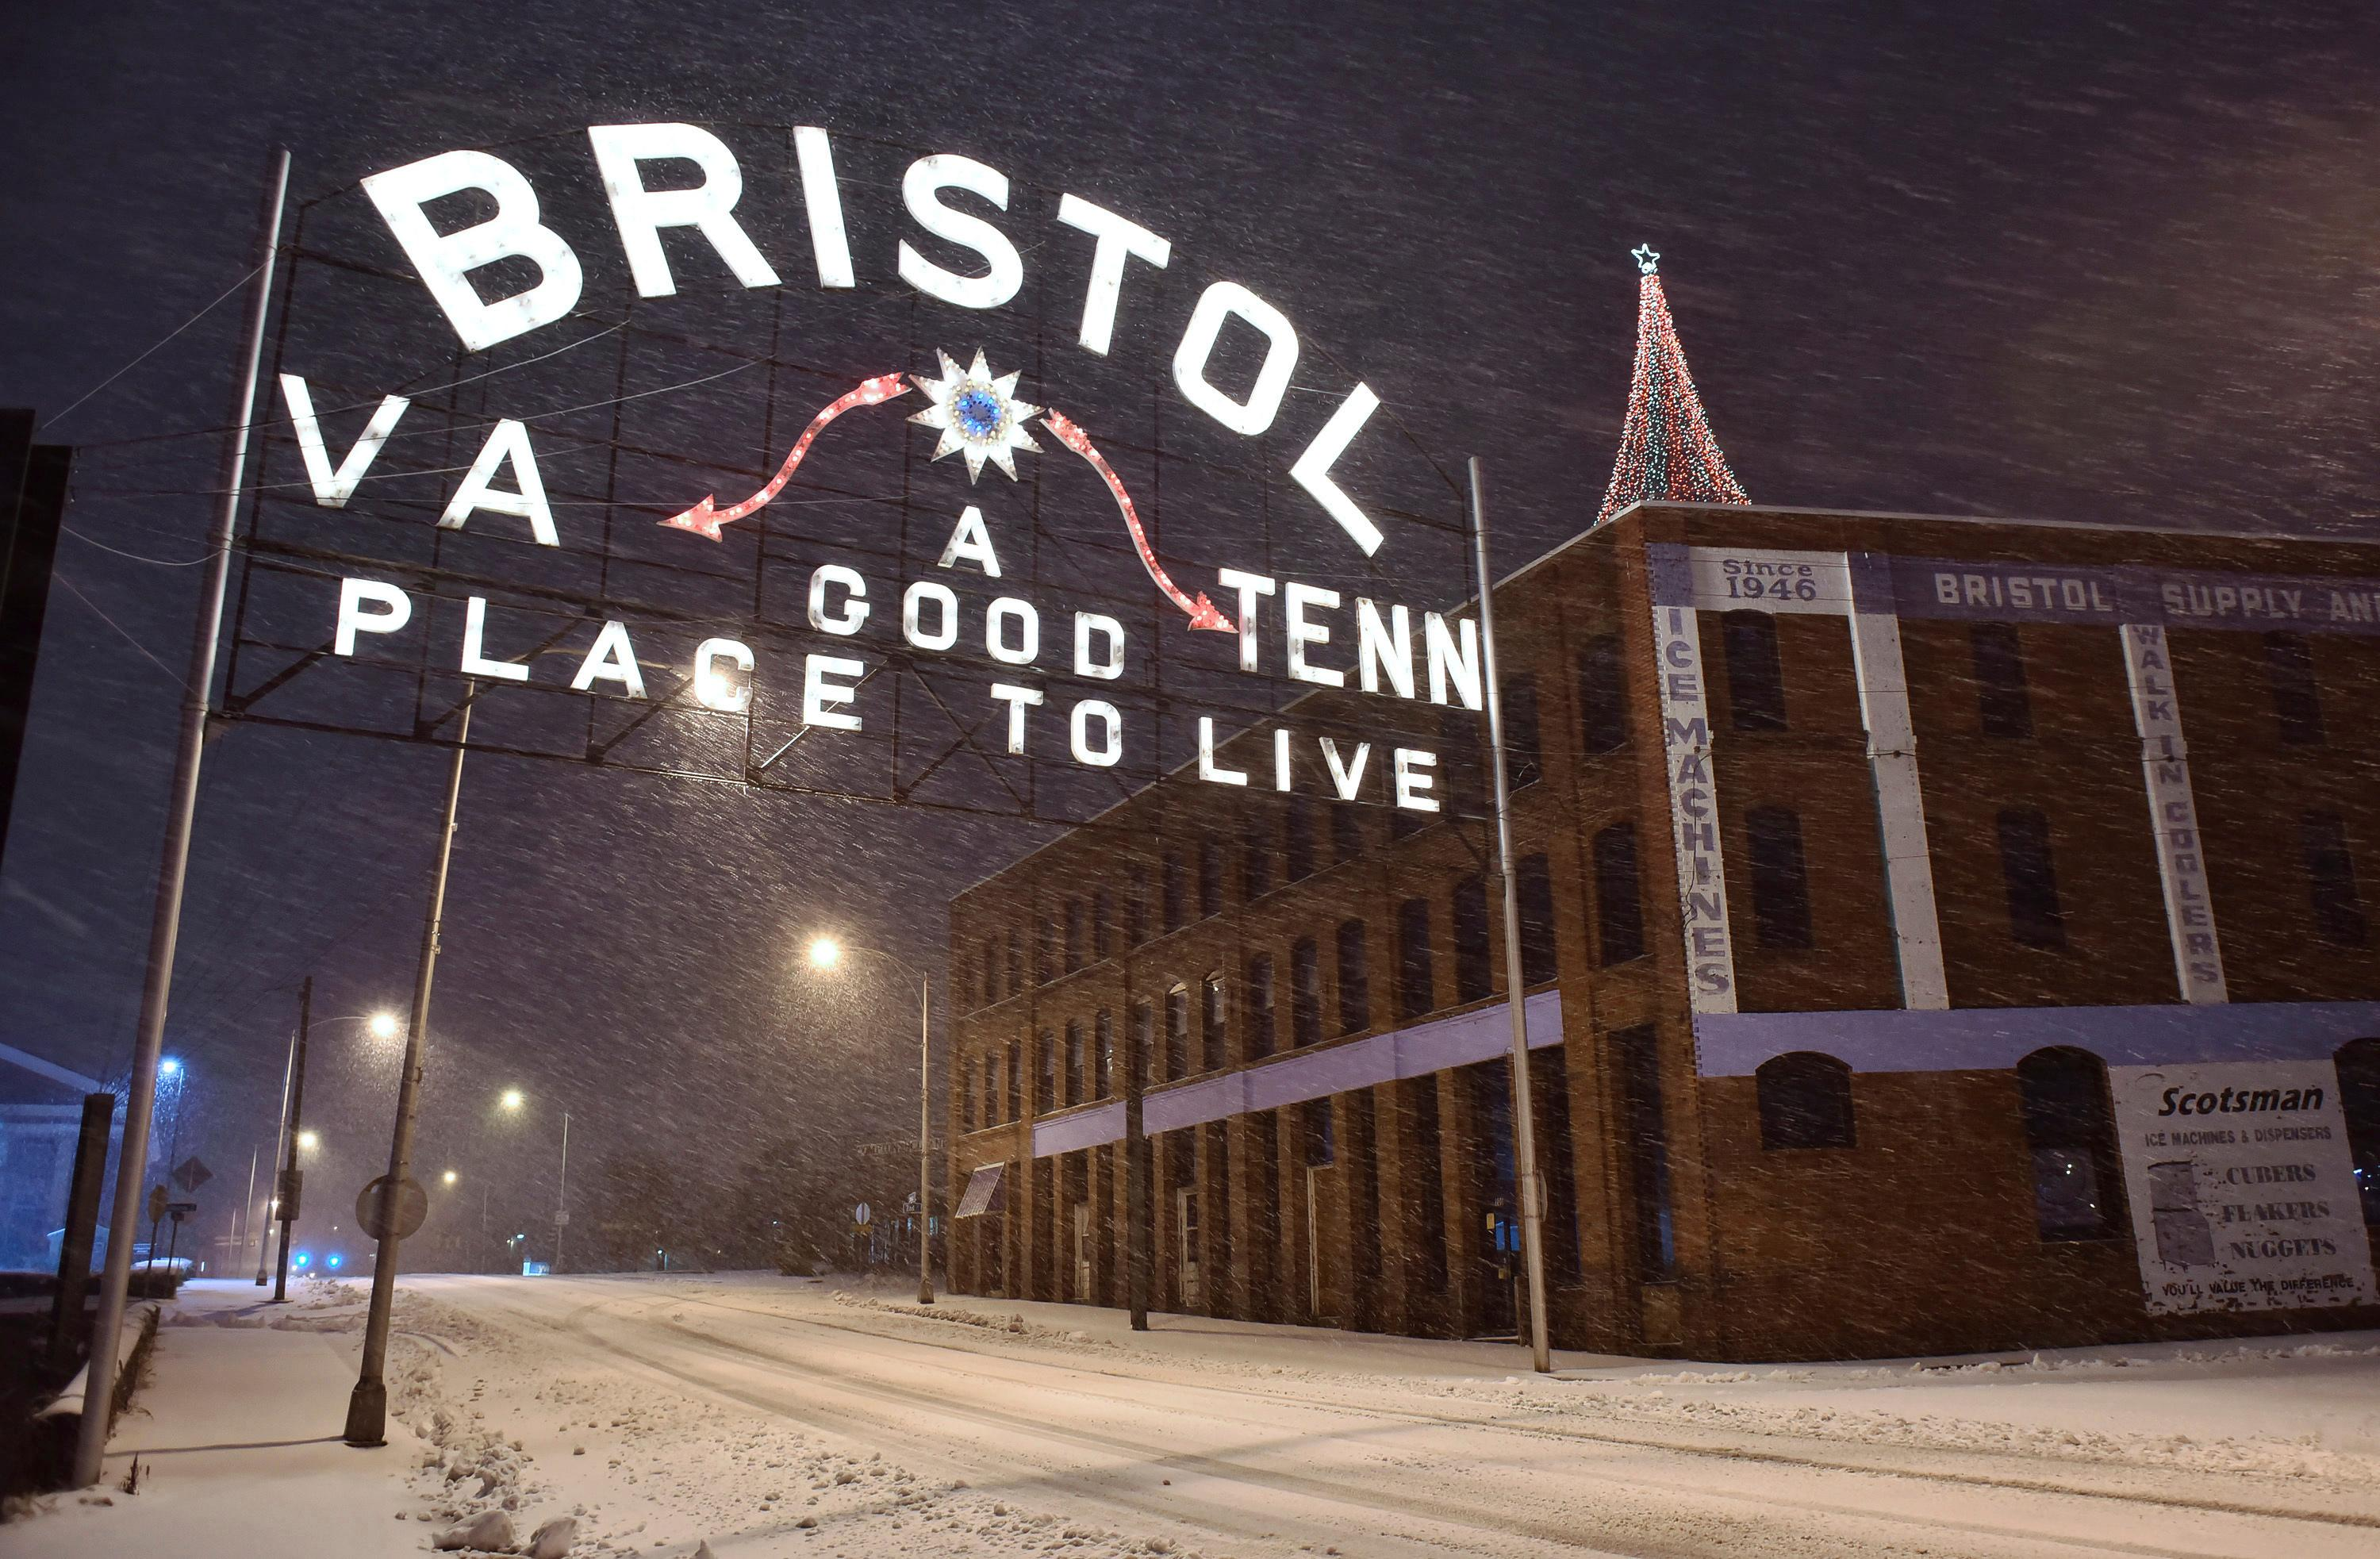 Snow falls in Bristol, Va., early Sunday, Dec. 9, 2018. A storm spreading snow, sleet and freezing rain across a wide swath of the South has millions of people in its path, raising the threat of immobilizing snowfalls, icy roads and possible power outages. (Andre Teague/The Bristol Herald-Courier via AP)